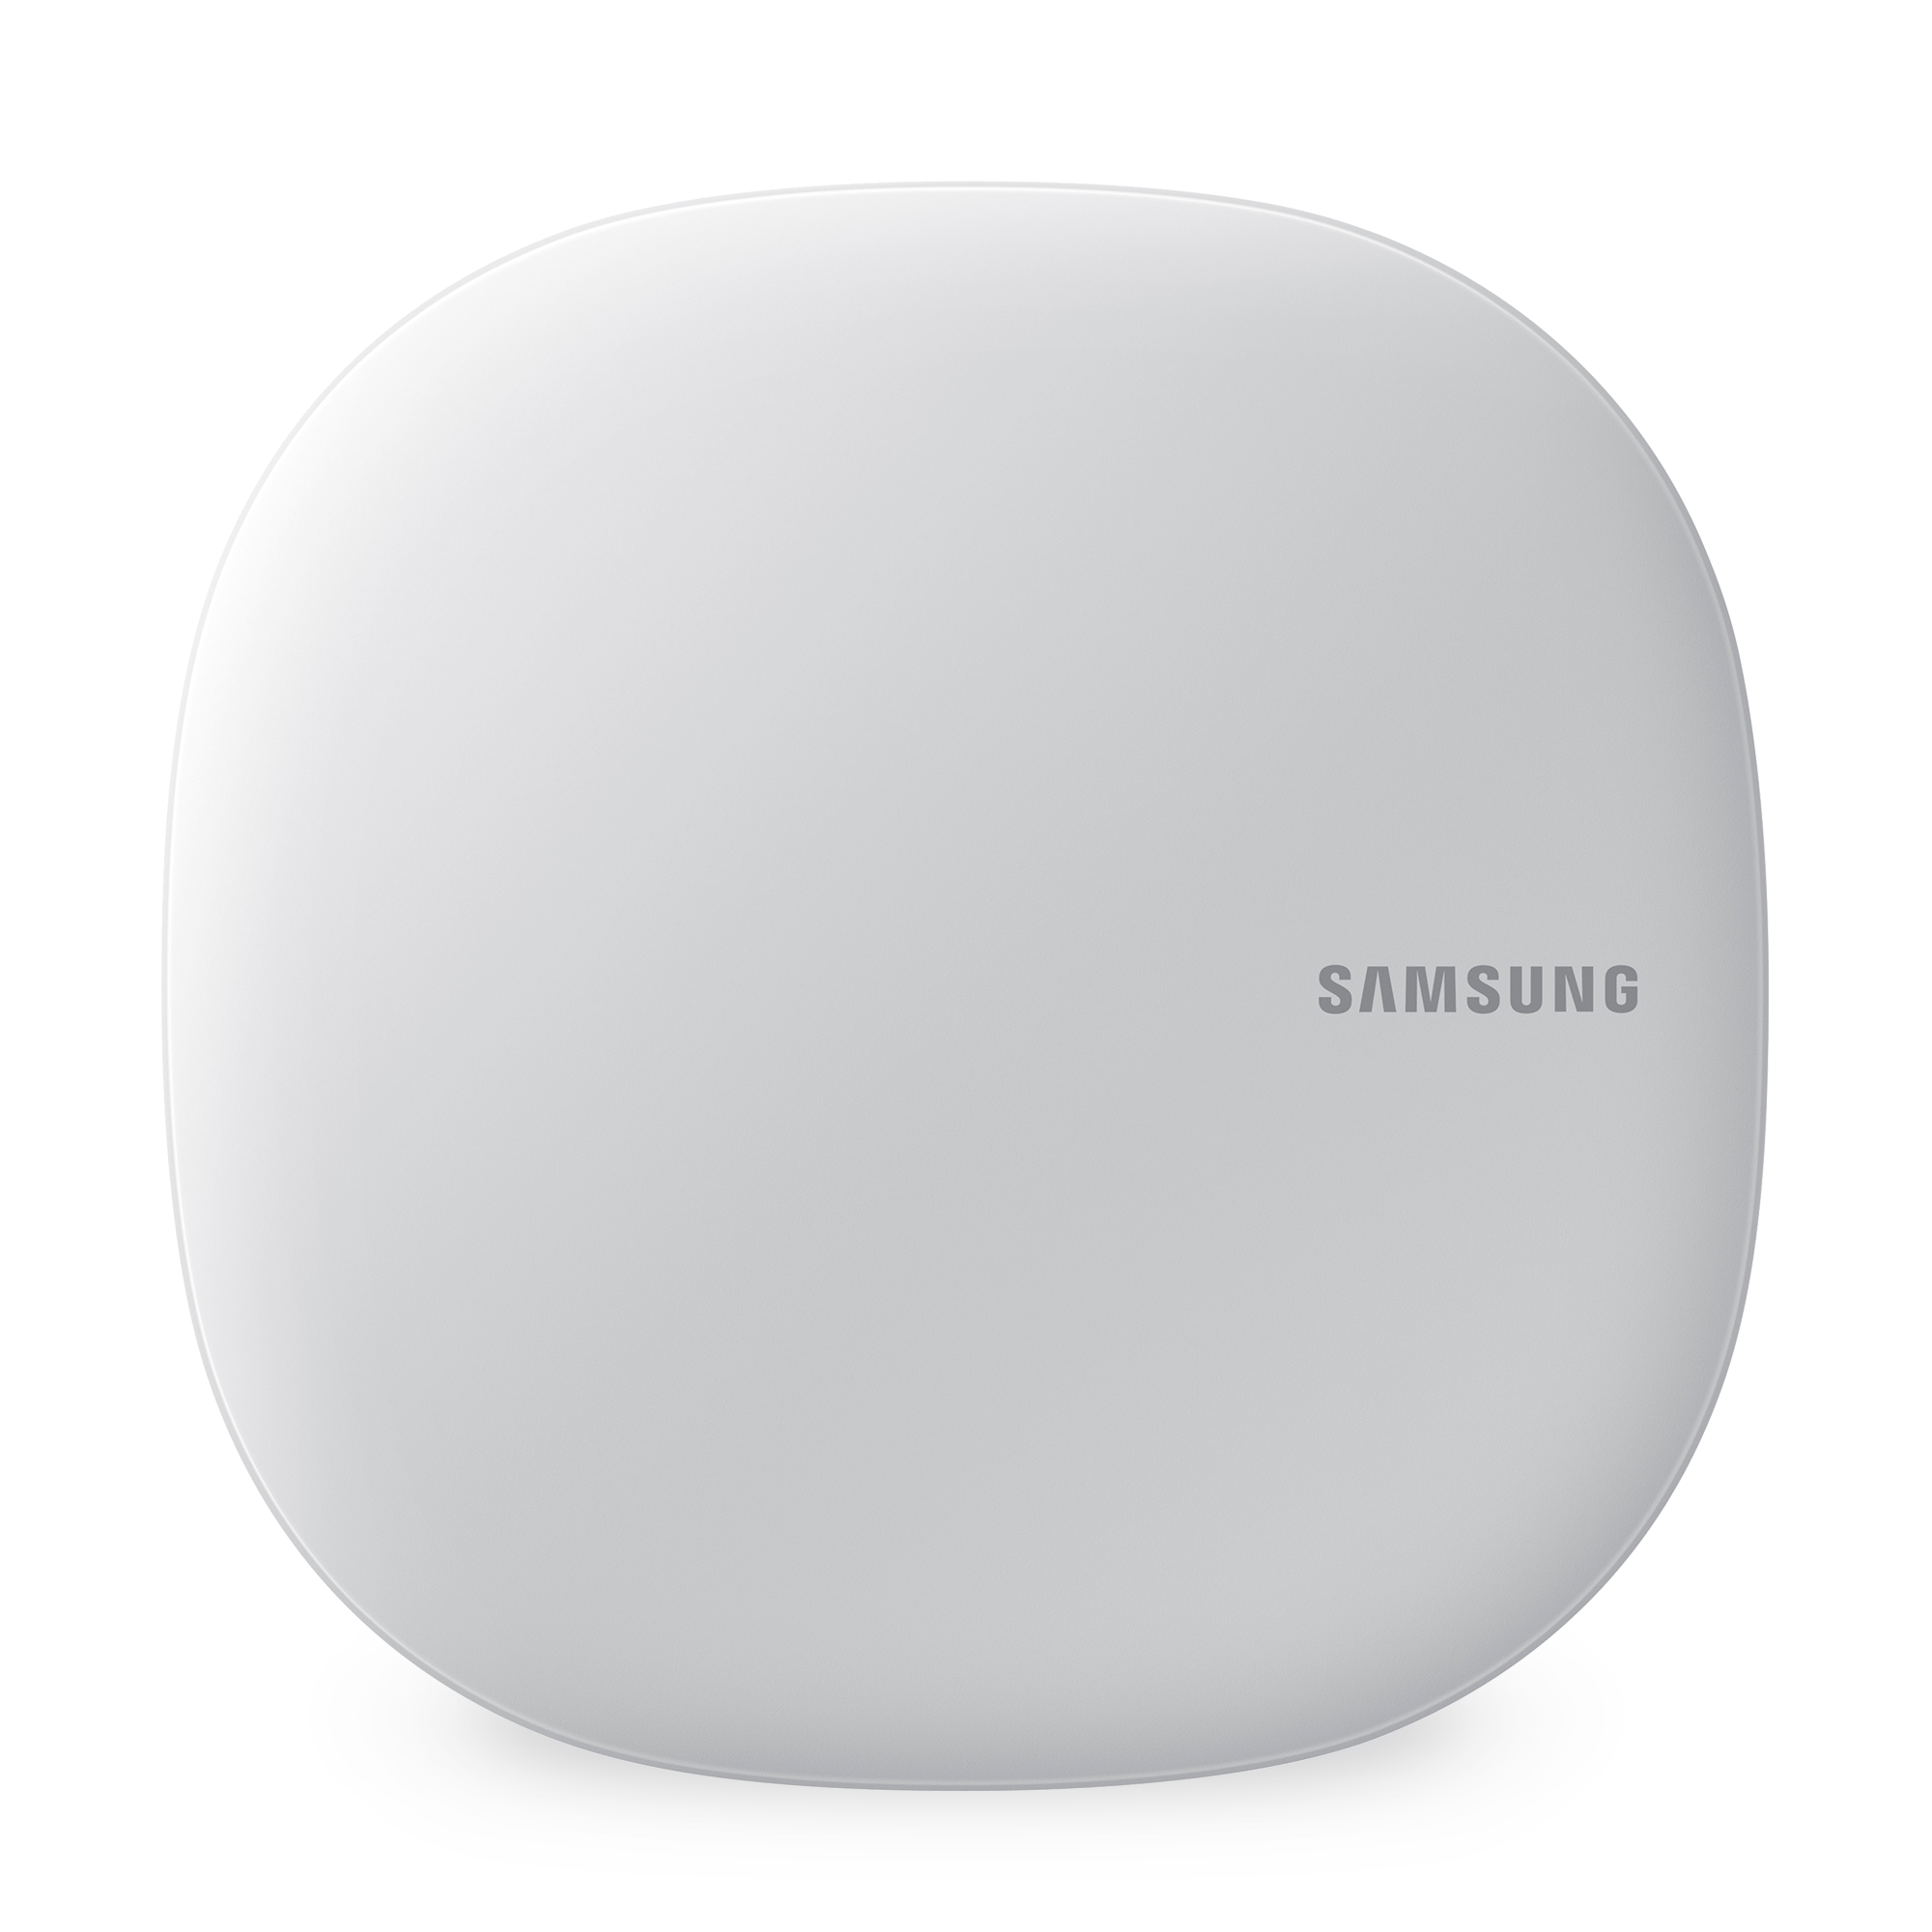 samsung connect home ac1300 smart wi-fi system manual